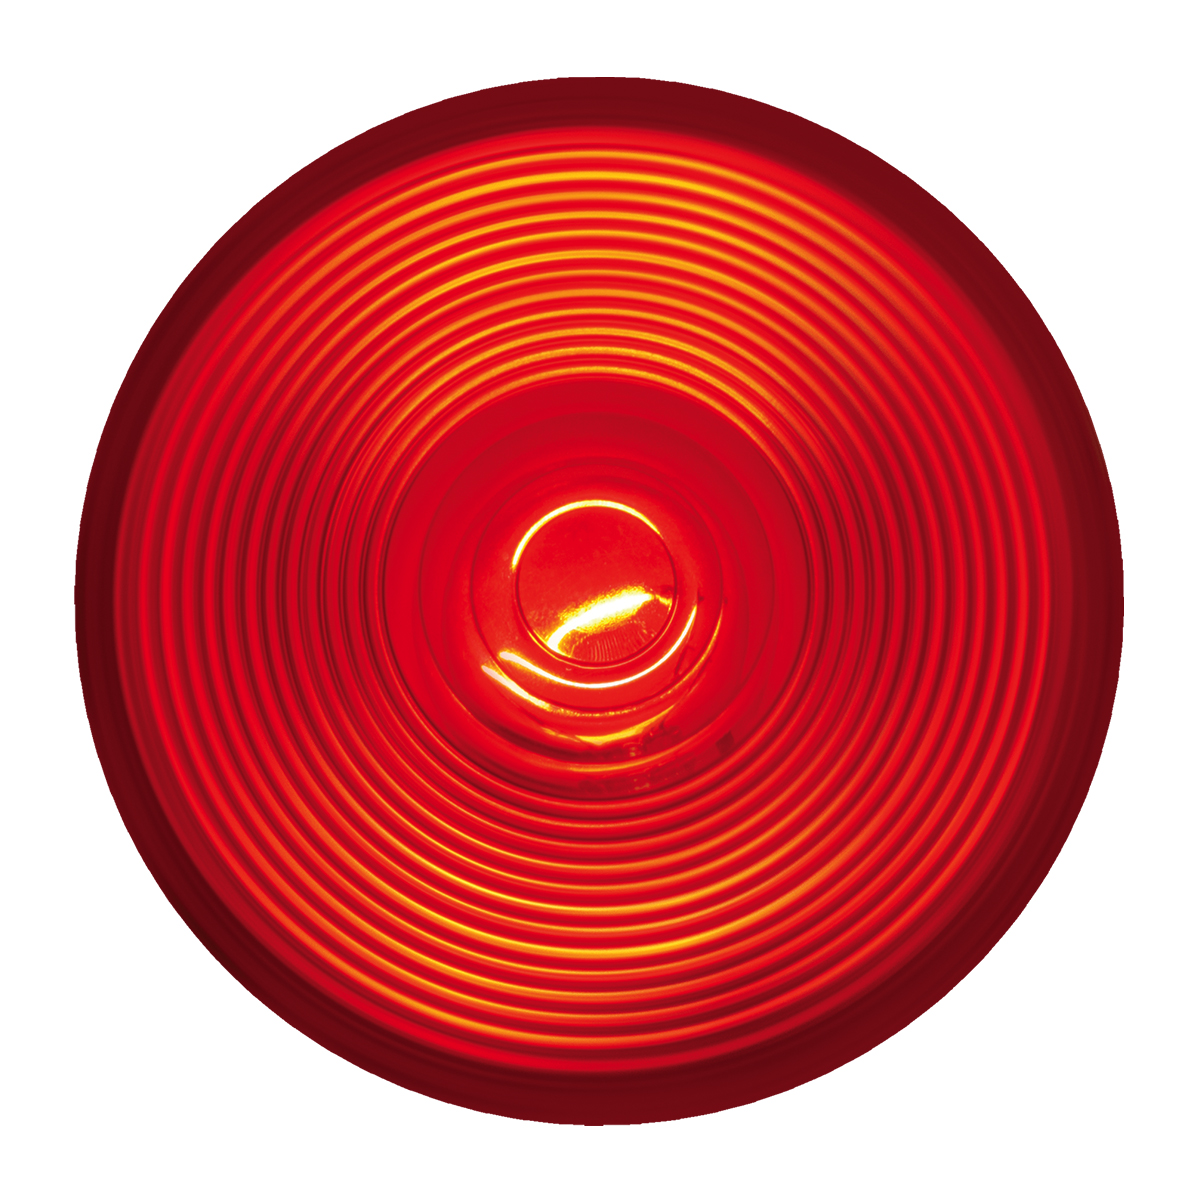 "#80471 4"" Round Incandescent Flat Red/Red Light"